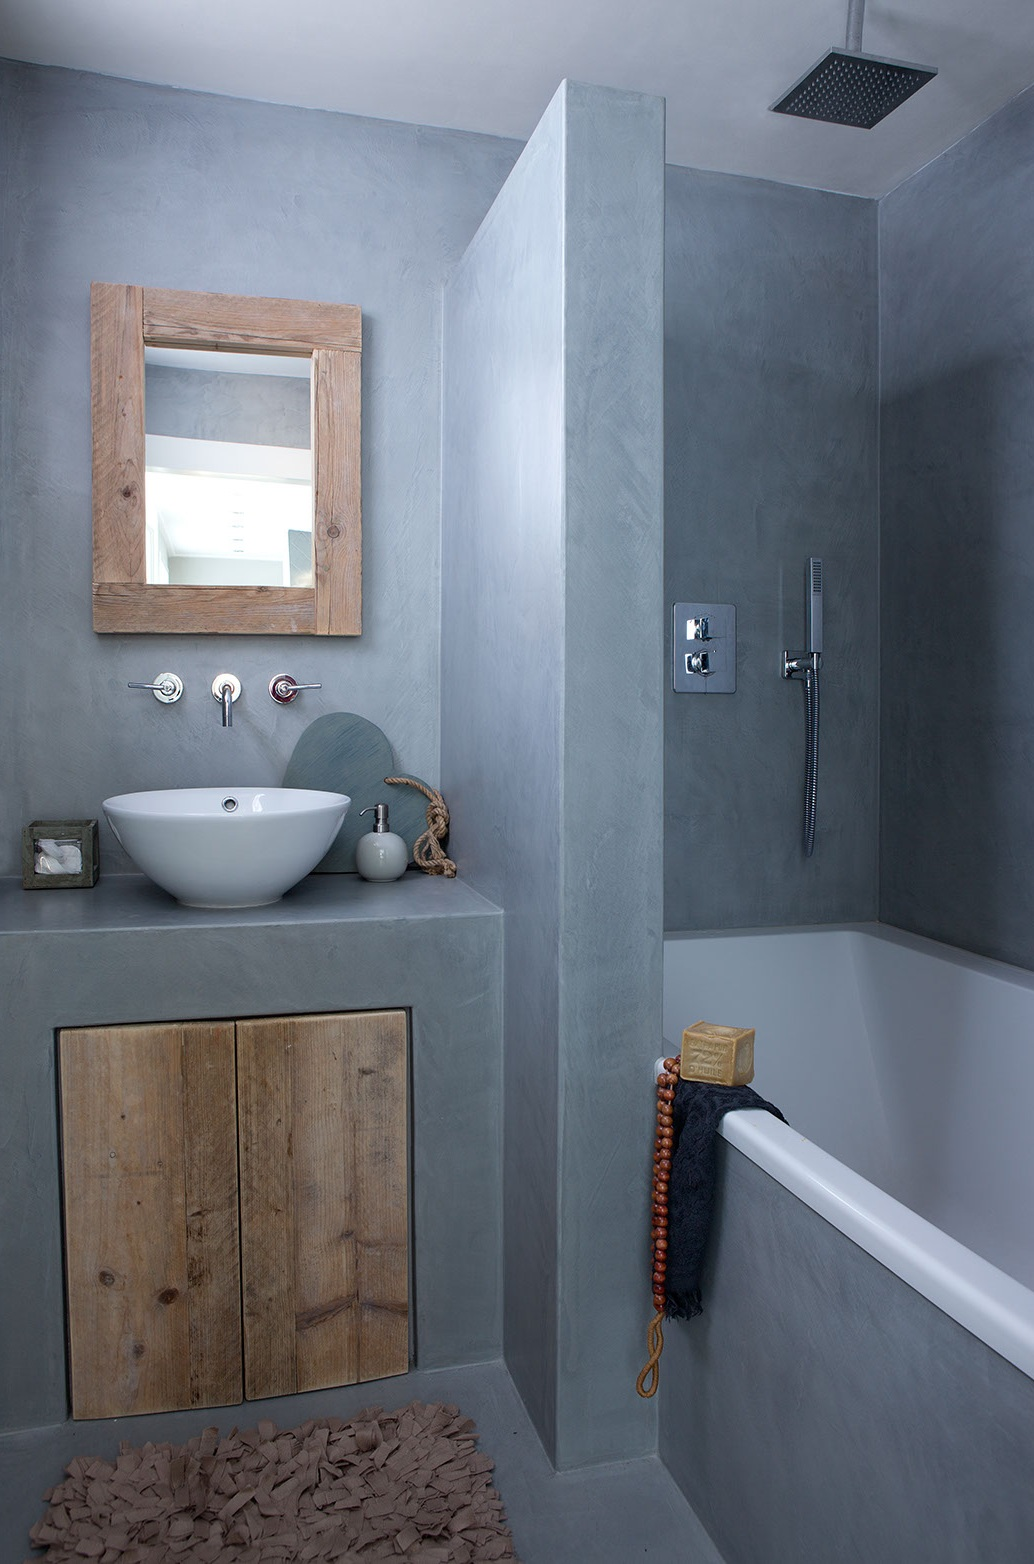 27 tadelakt bathroom design ideas decoholic for Salle de bain carrelage blanc mur gris